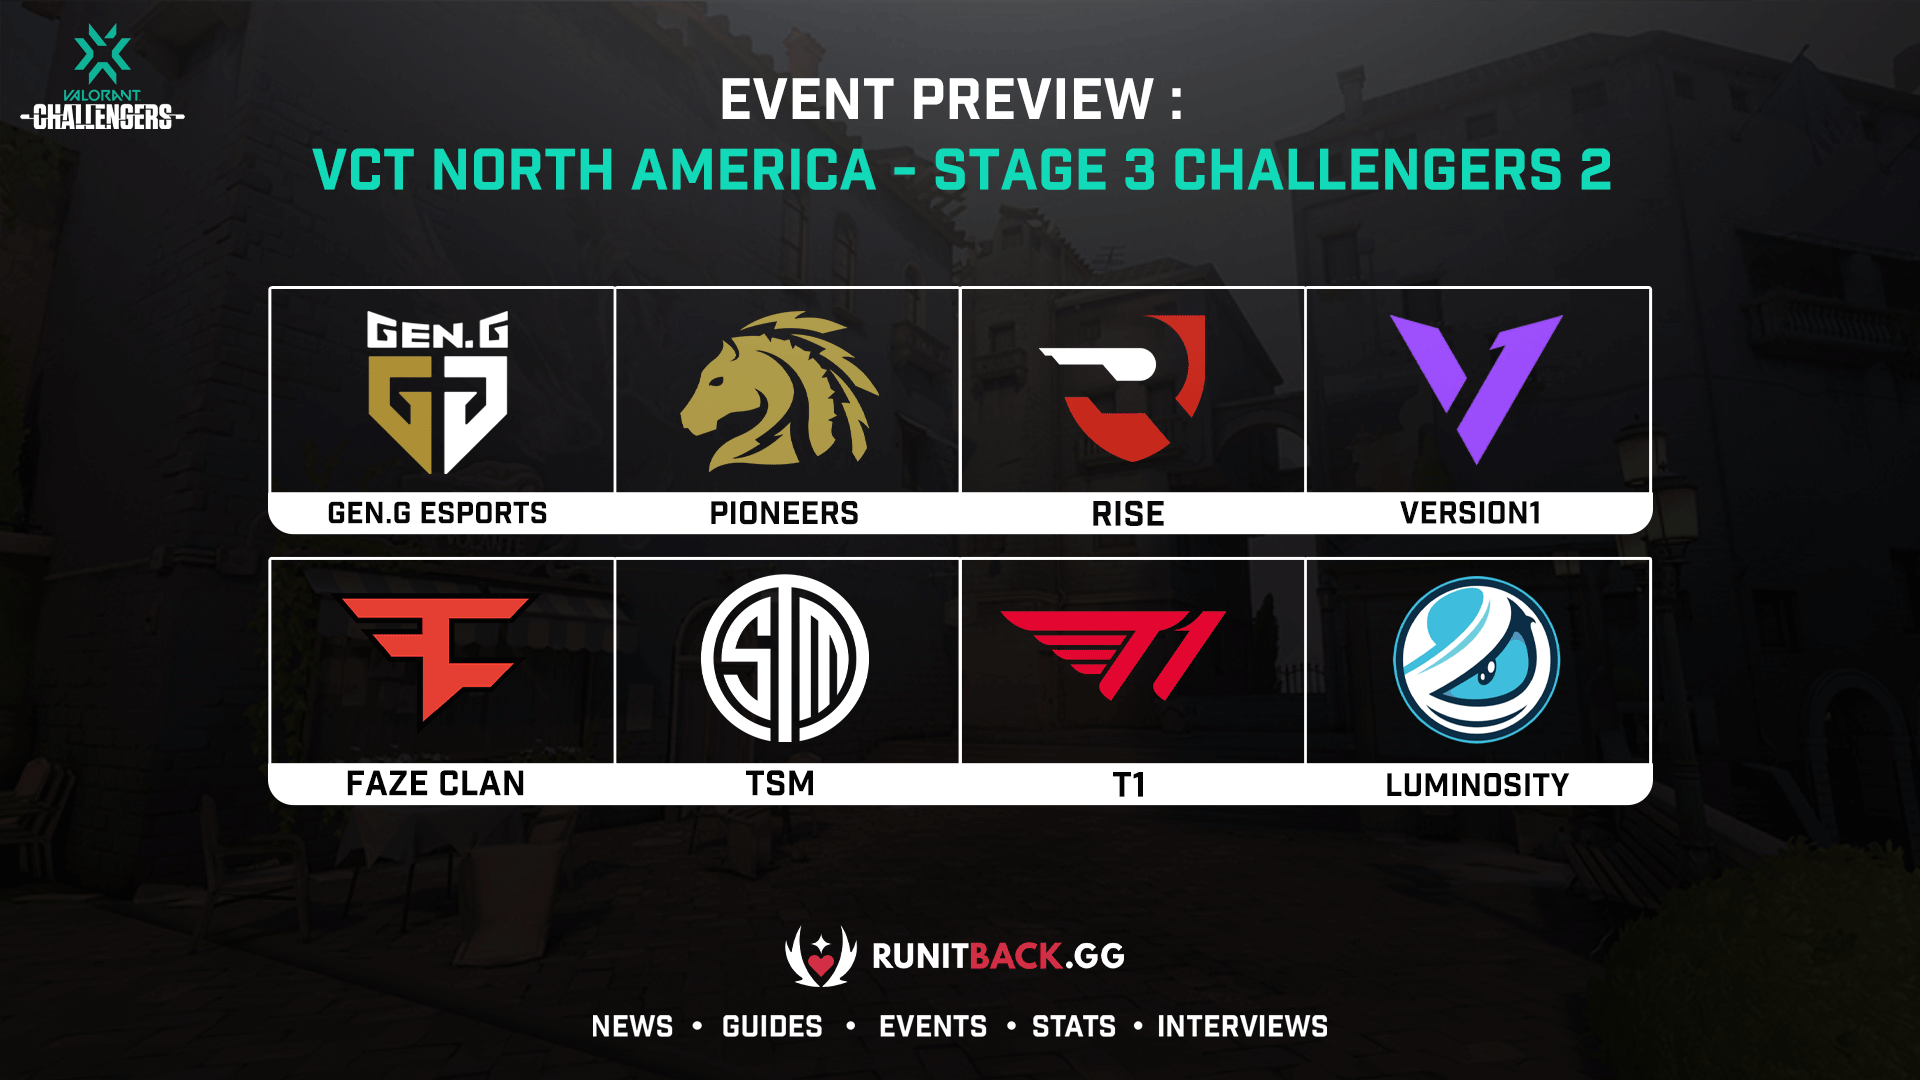 VCT NA Stage 3 Challengers 2 Main Event Preview